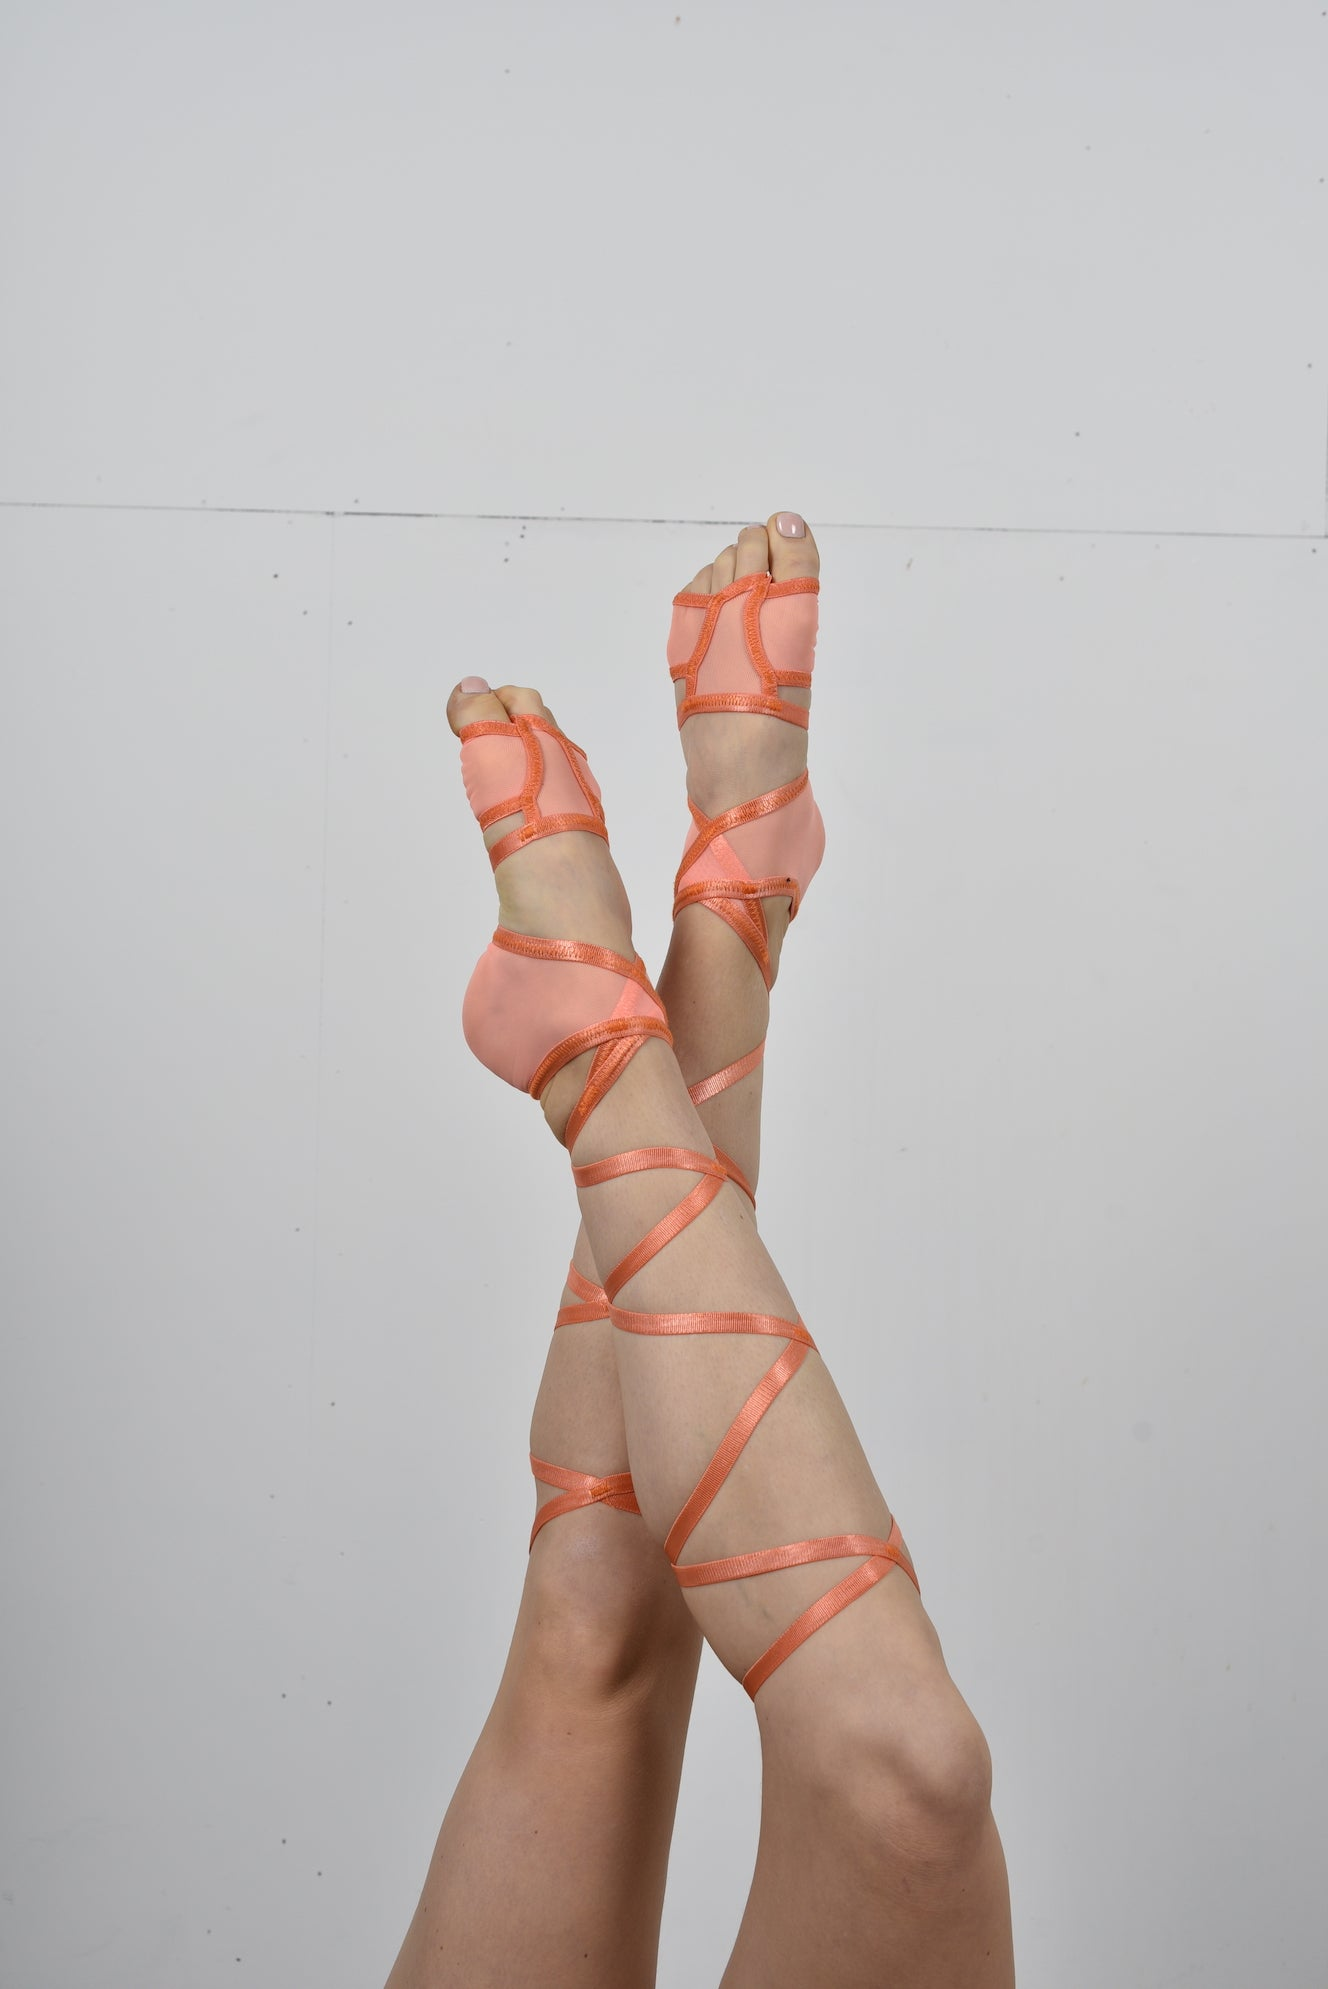 Foot Lingerie - Alison Pyrke Collaboration